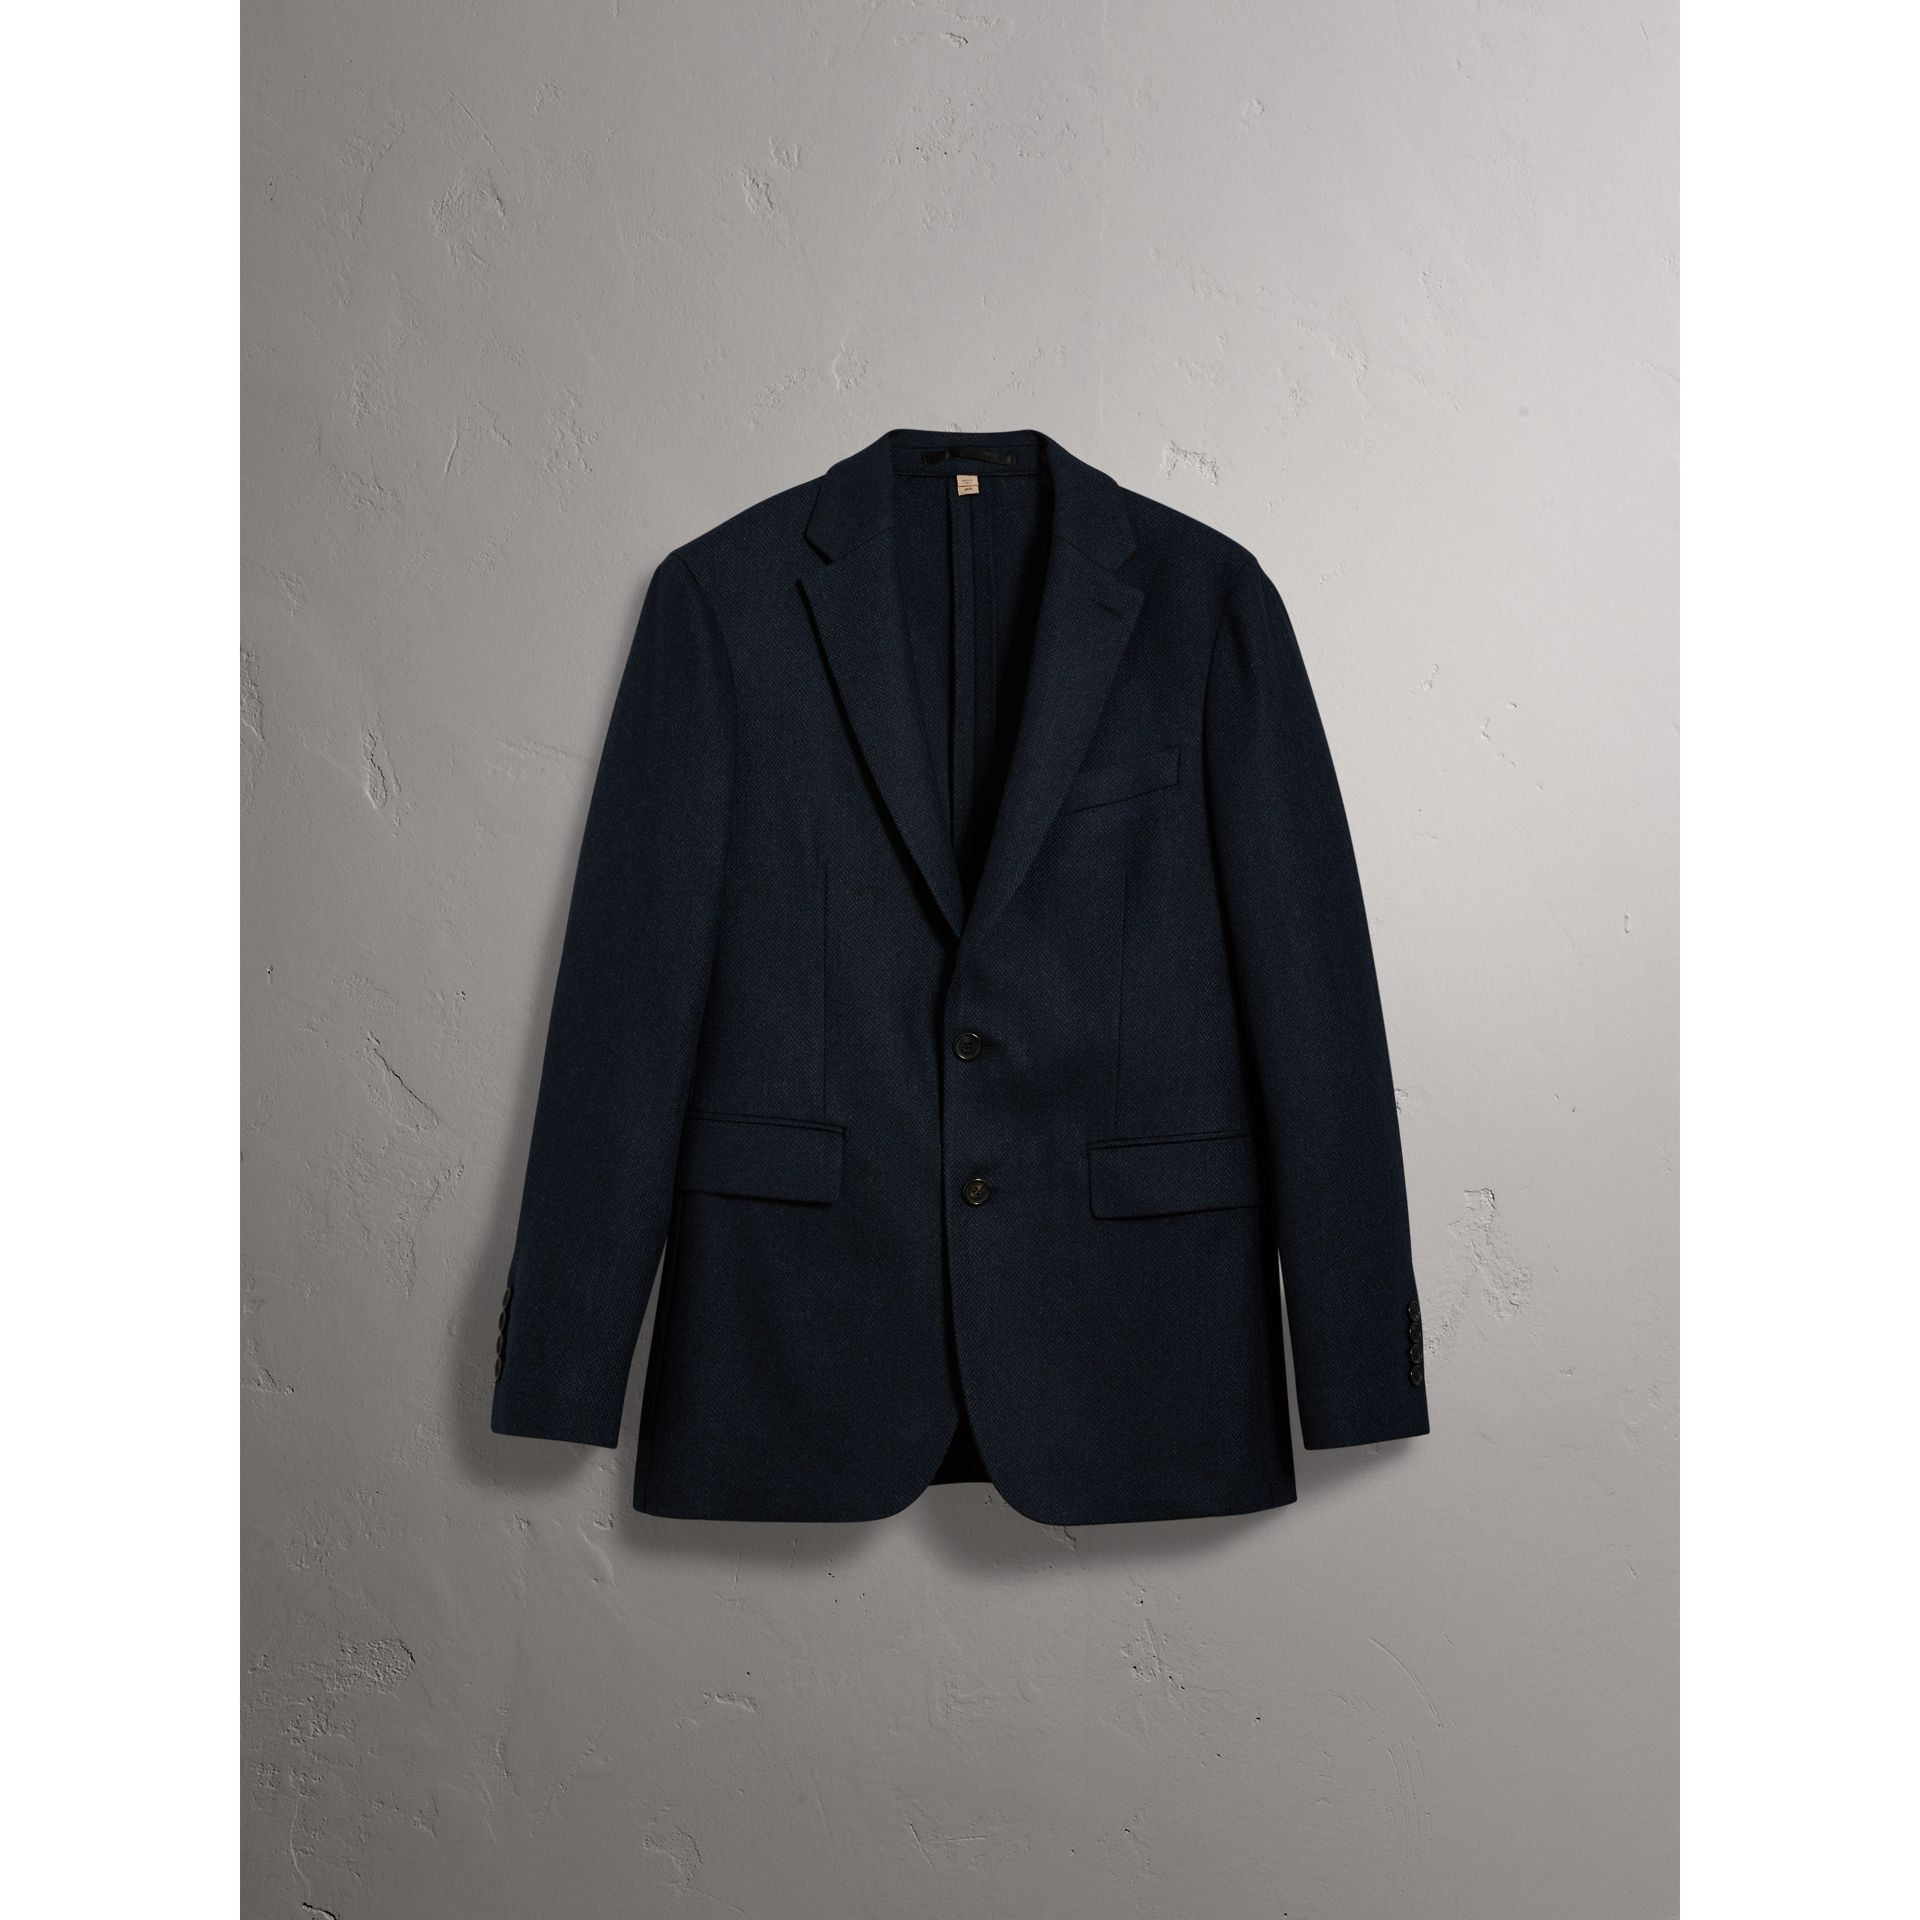 Soho Fit Herringbone Wool Tailored Jacket in Ink Blue/black - Men | Burberry - gallery image 3